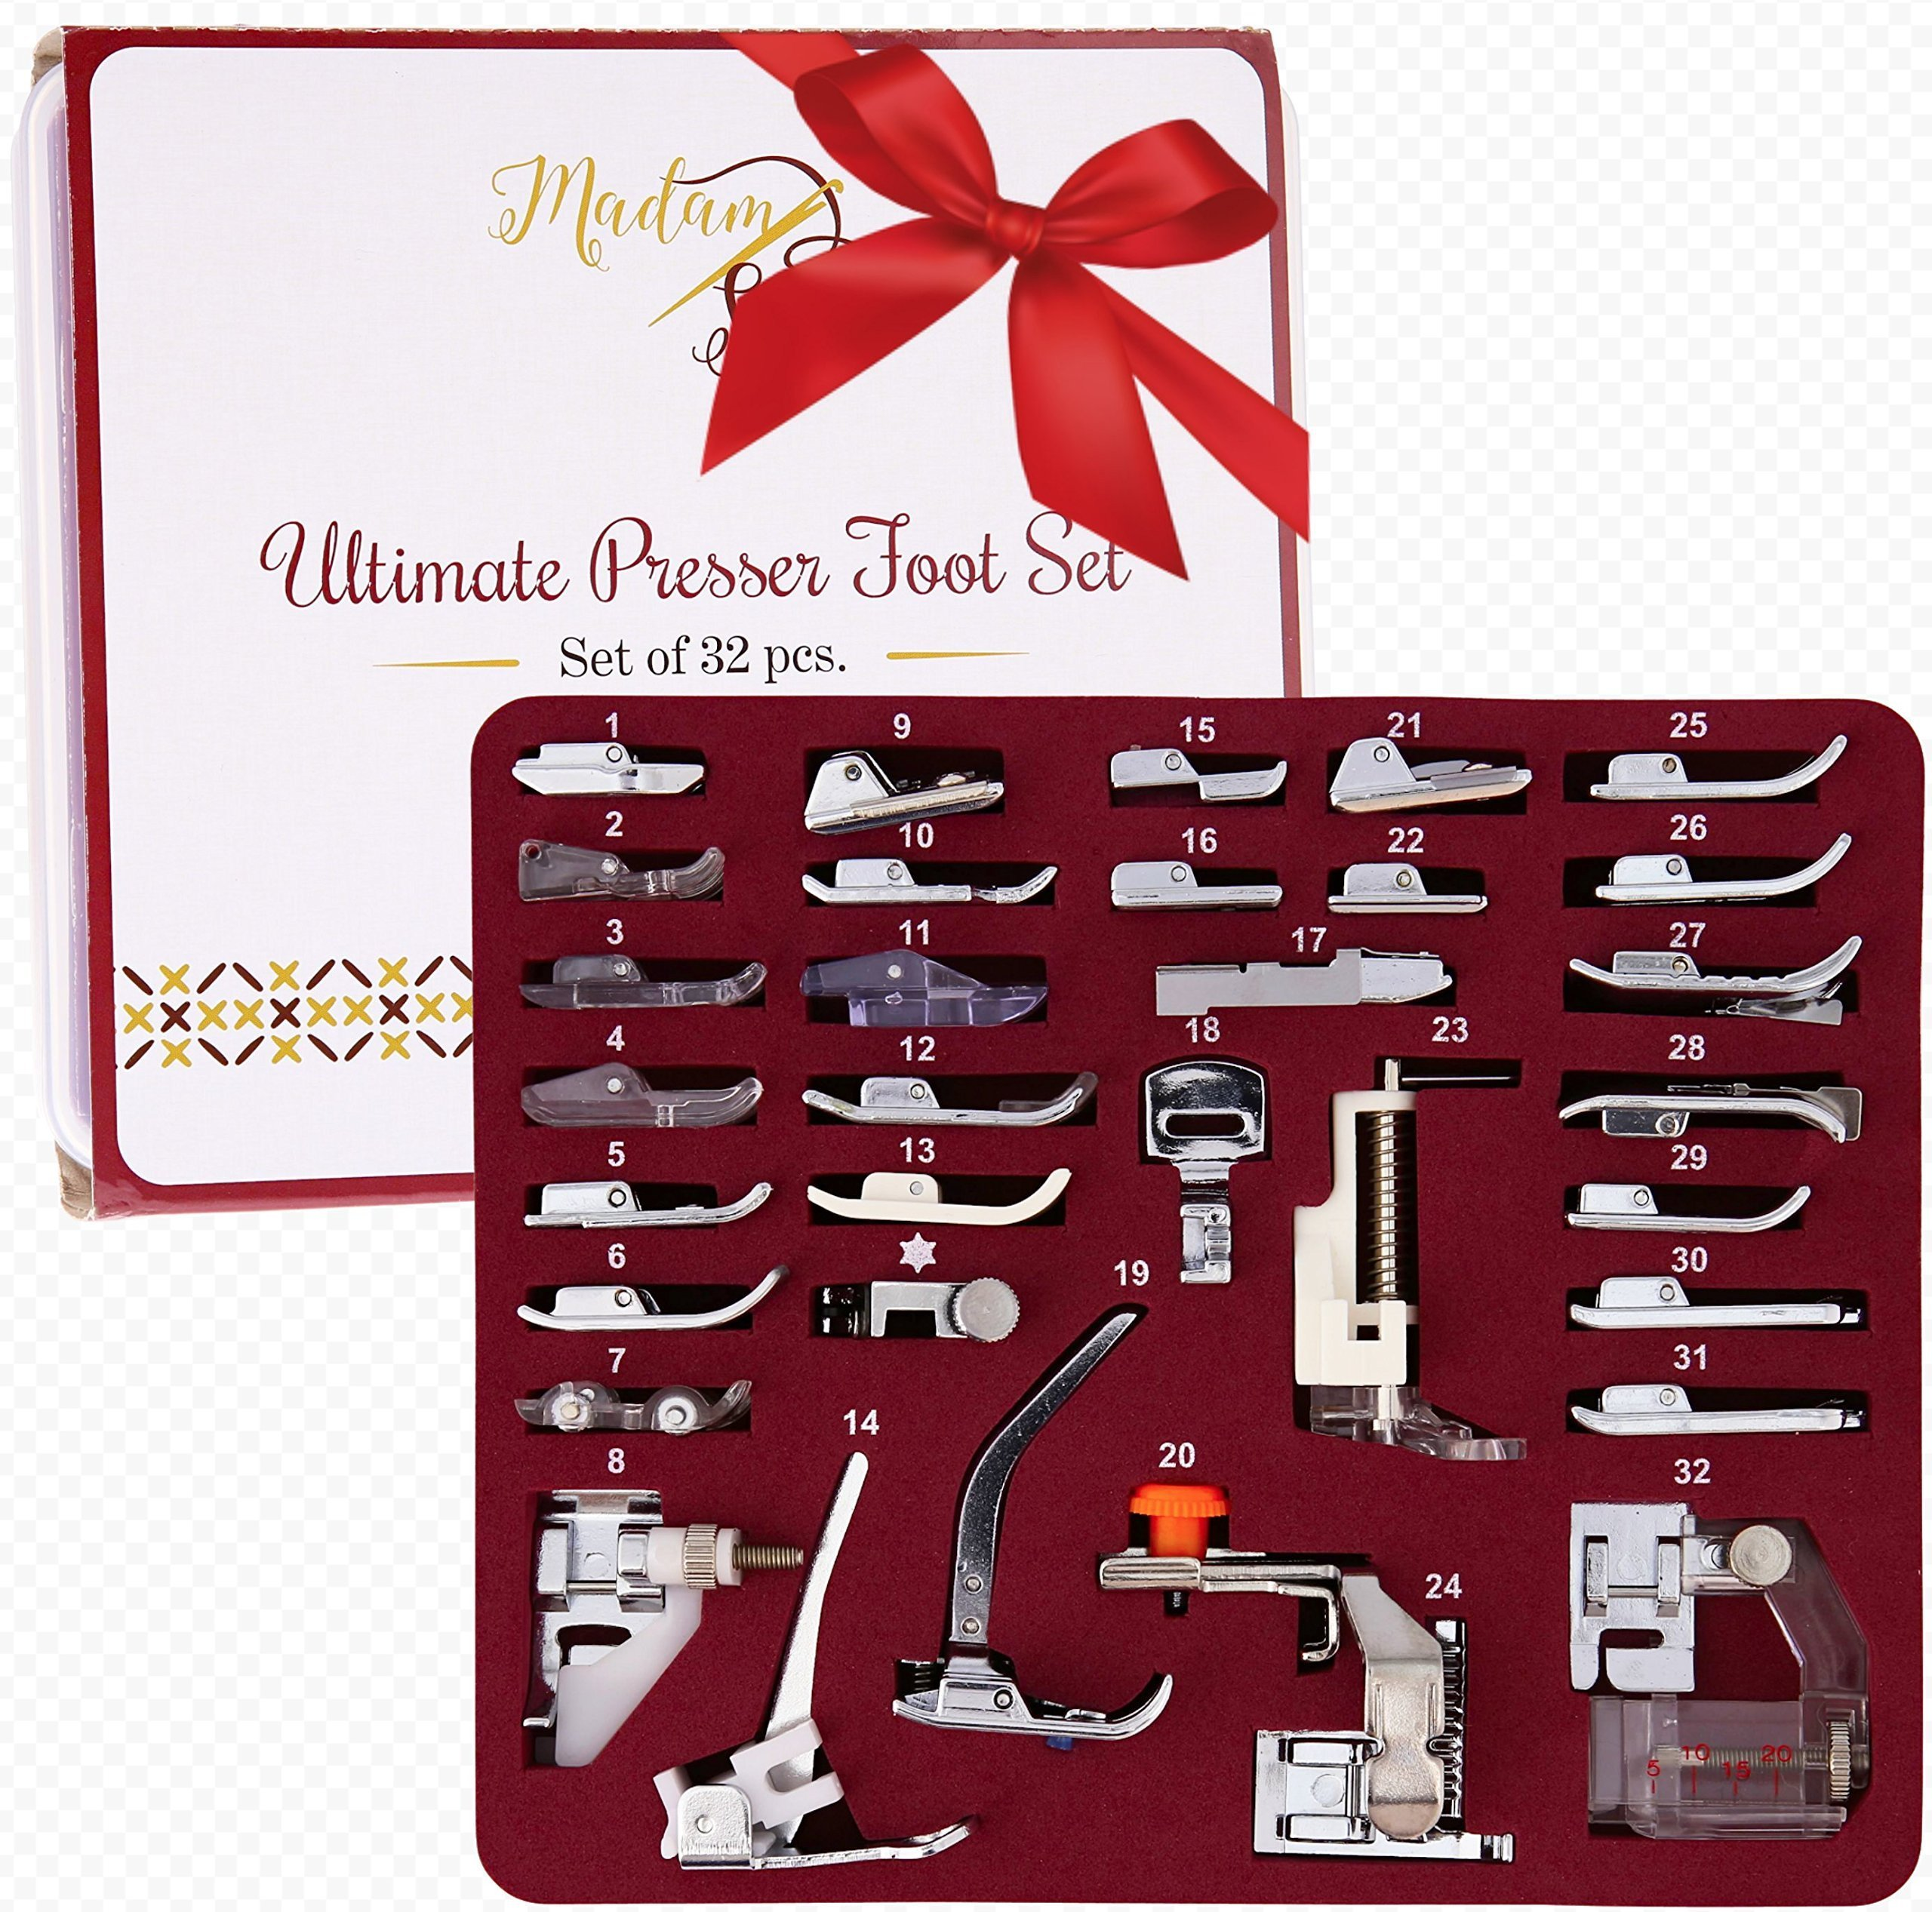 Madam Sew Presser Foot Set 32 PCS - The ONLY One with Manual, DVD and Deluxe Storage Case with Numbered Slots for Easy and Neat Organization by Madam Sew